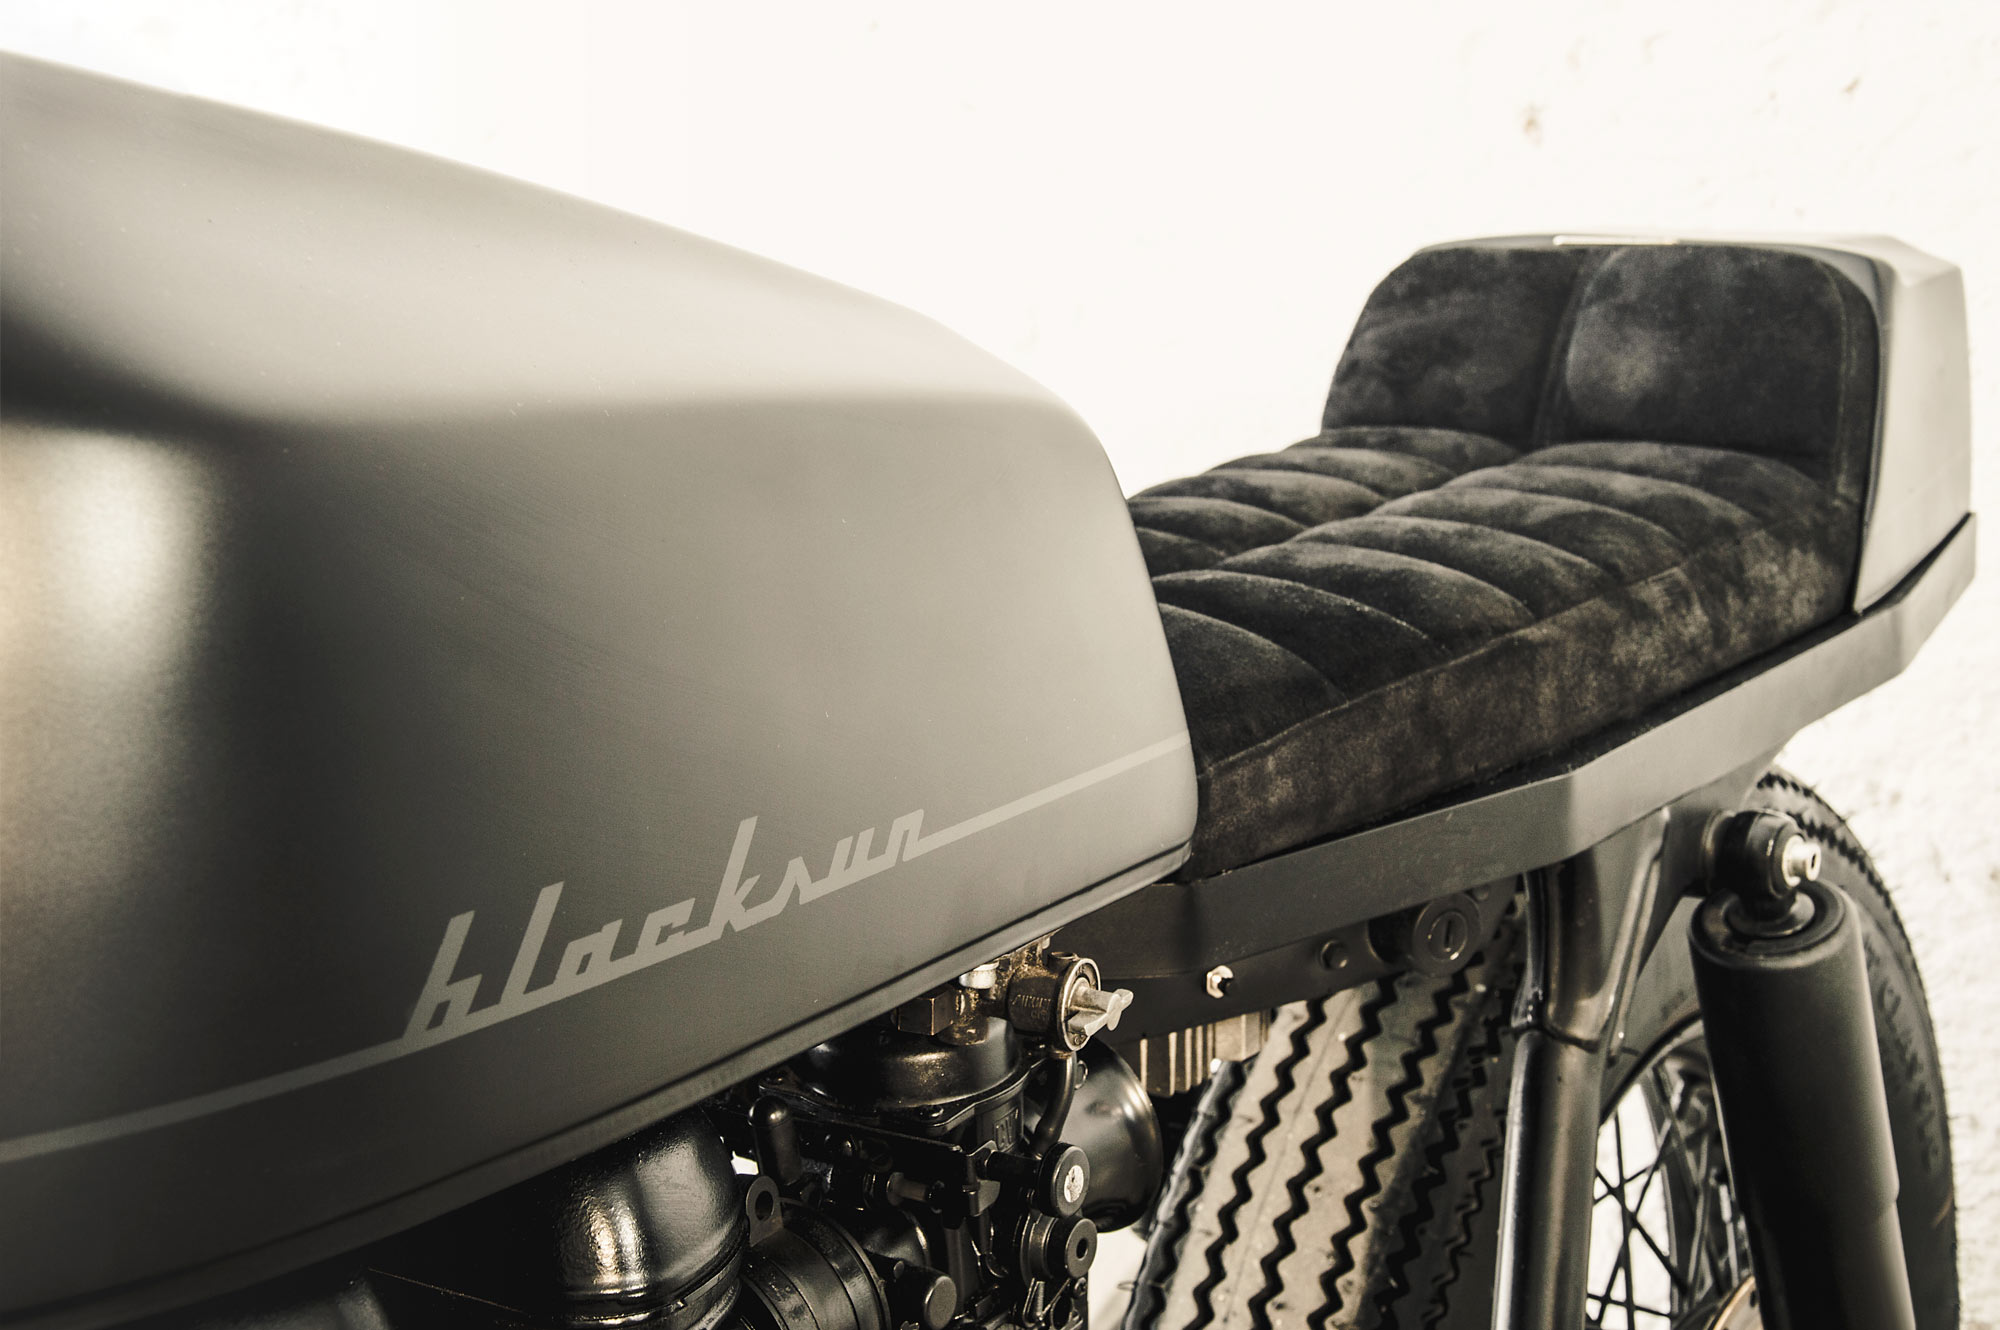 SHADOW OF A DOUBT  Alea Motorcycle's 'Blacksun' Triumph